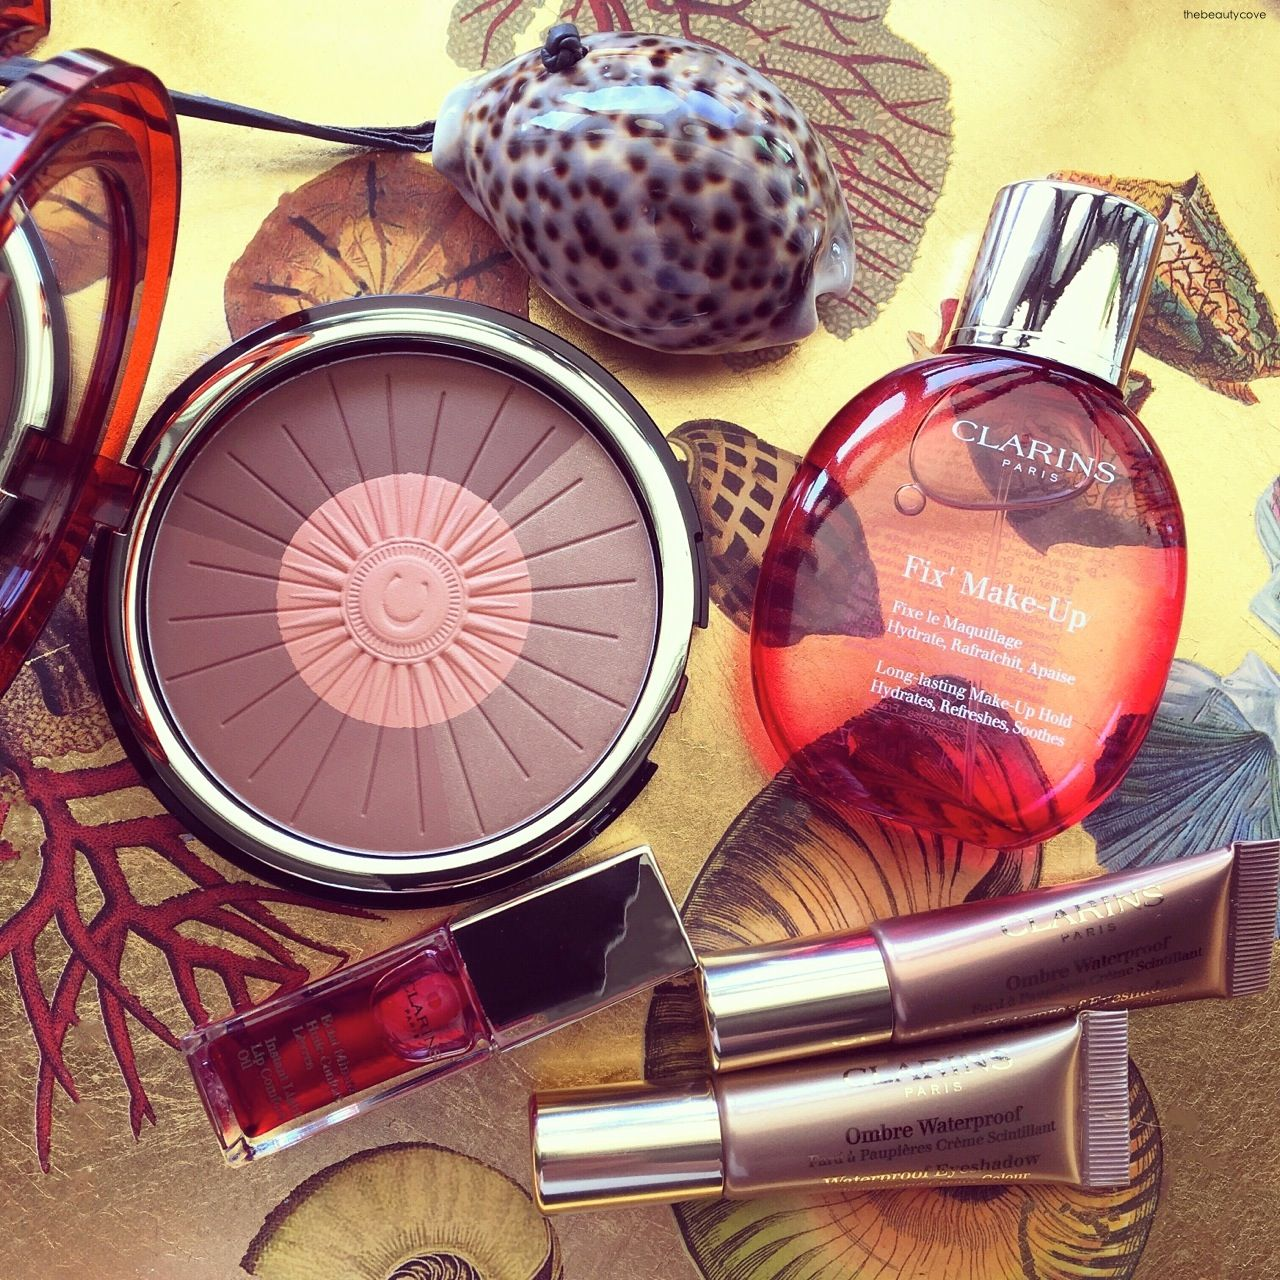 The Beauty Cove: PRIMAVERA ESTATE 2016 • CLARINS MAKEUP • SUNKISSED